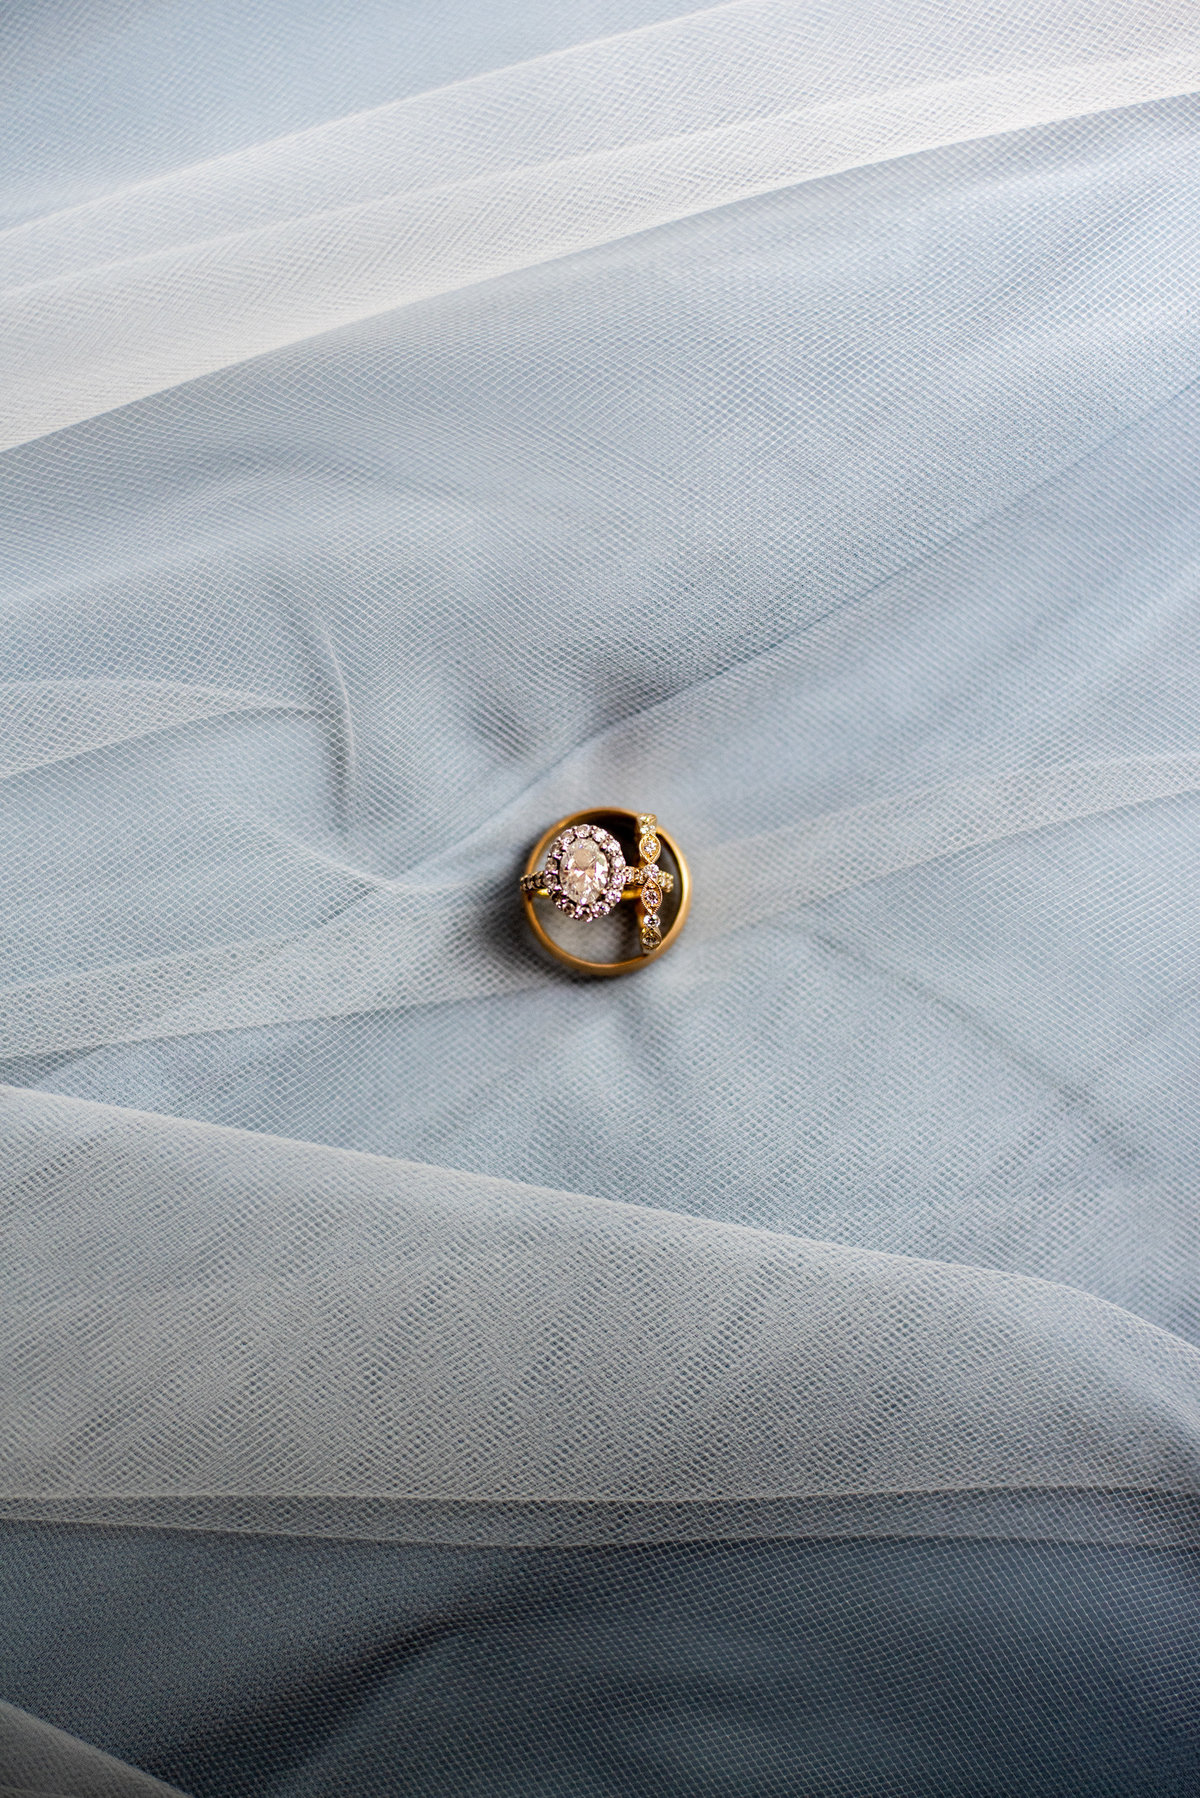 Beautiful ring shot. Richmond wedding photographer